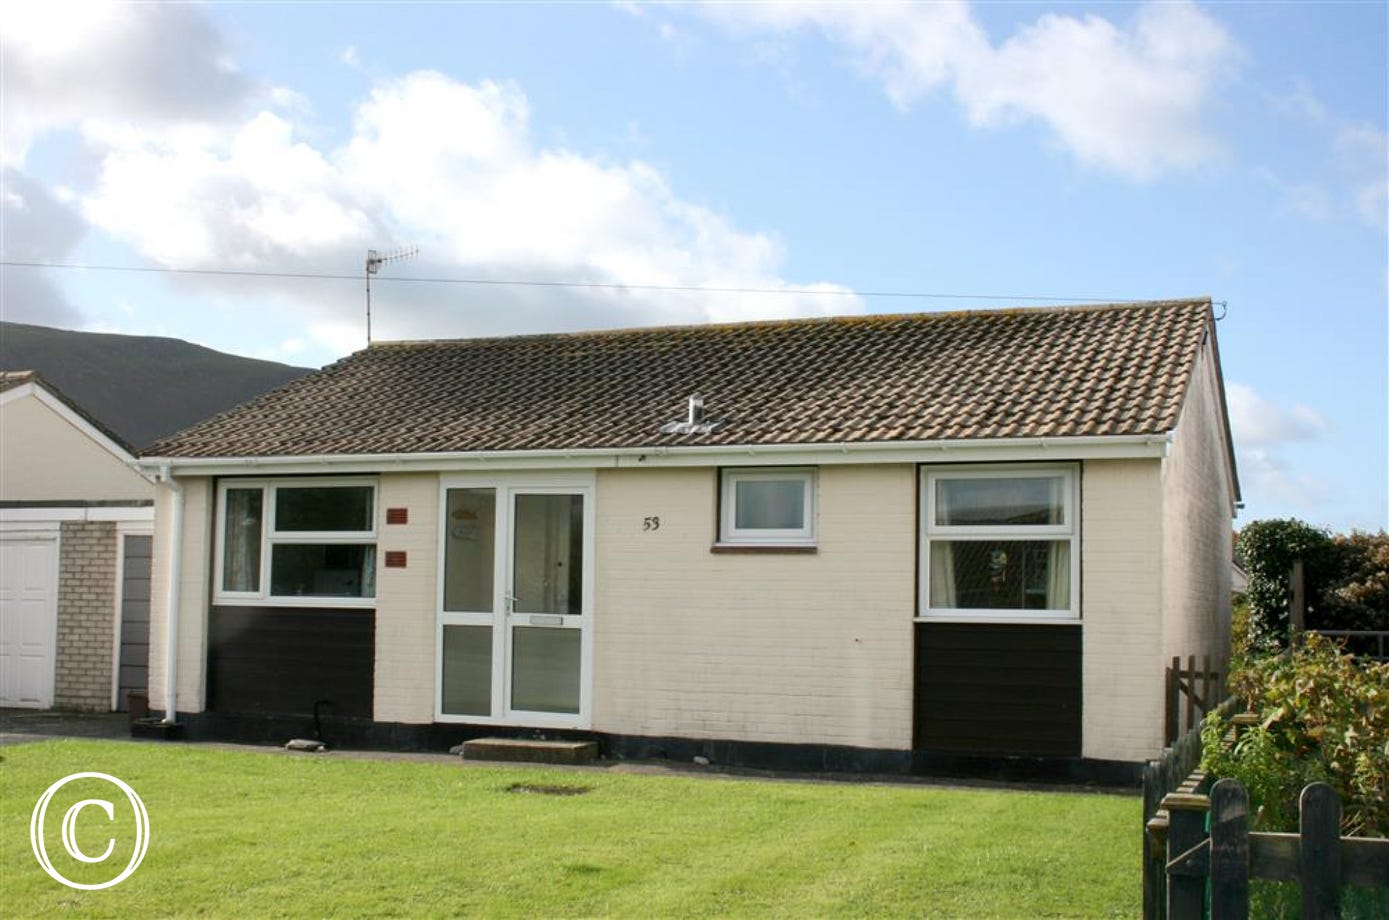 This neat bungalow in Fairbourne has a lawned garden to the front and parking on the driveway